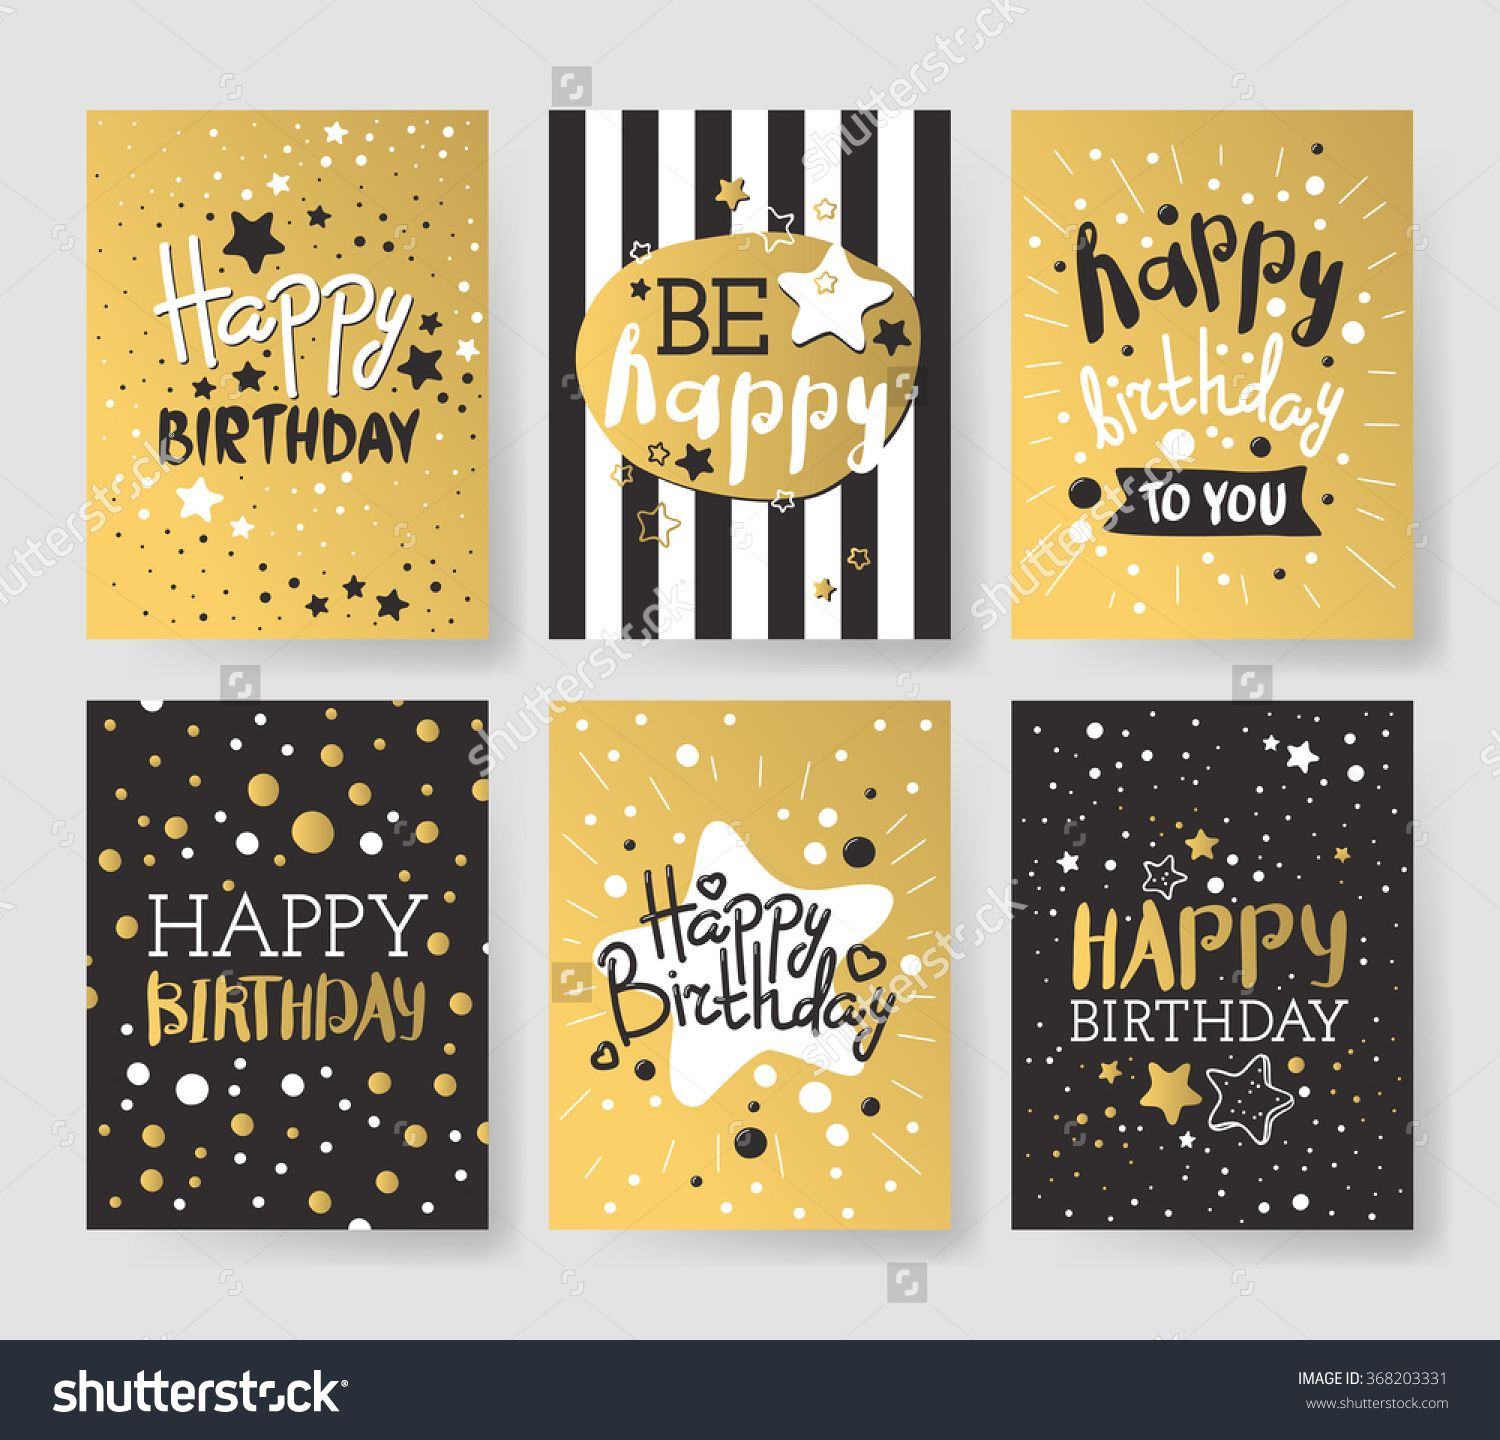 Scripts elegant lettering from designs golden age buscar con vector birthday invitation cards graphics beautiful birthday invitation cards design gold and black colors birthday vector greeting card deco by bookmarktalkfo Images